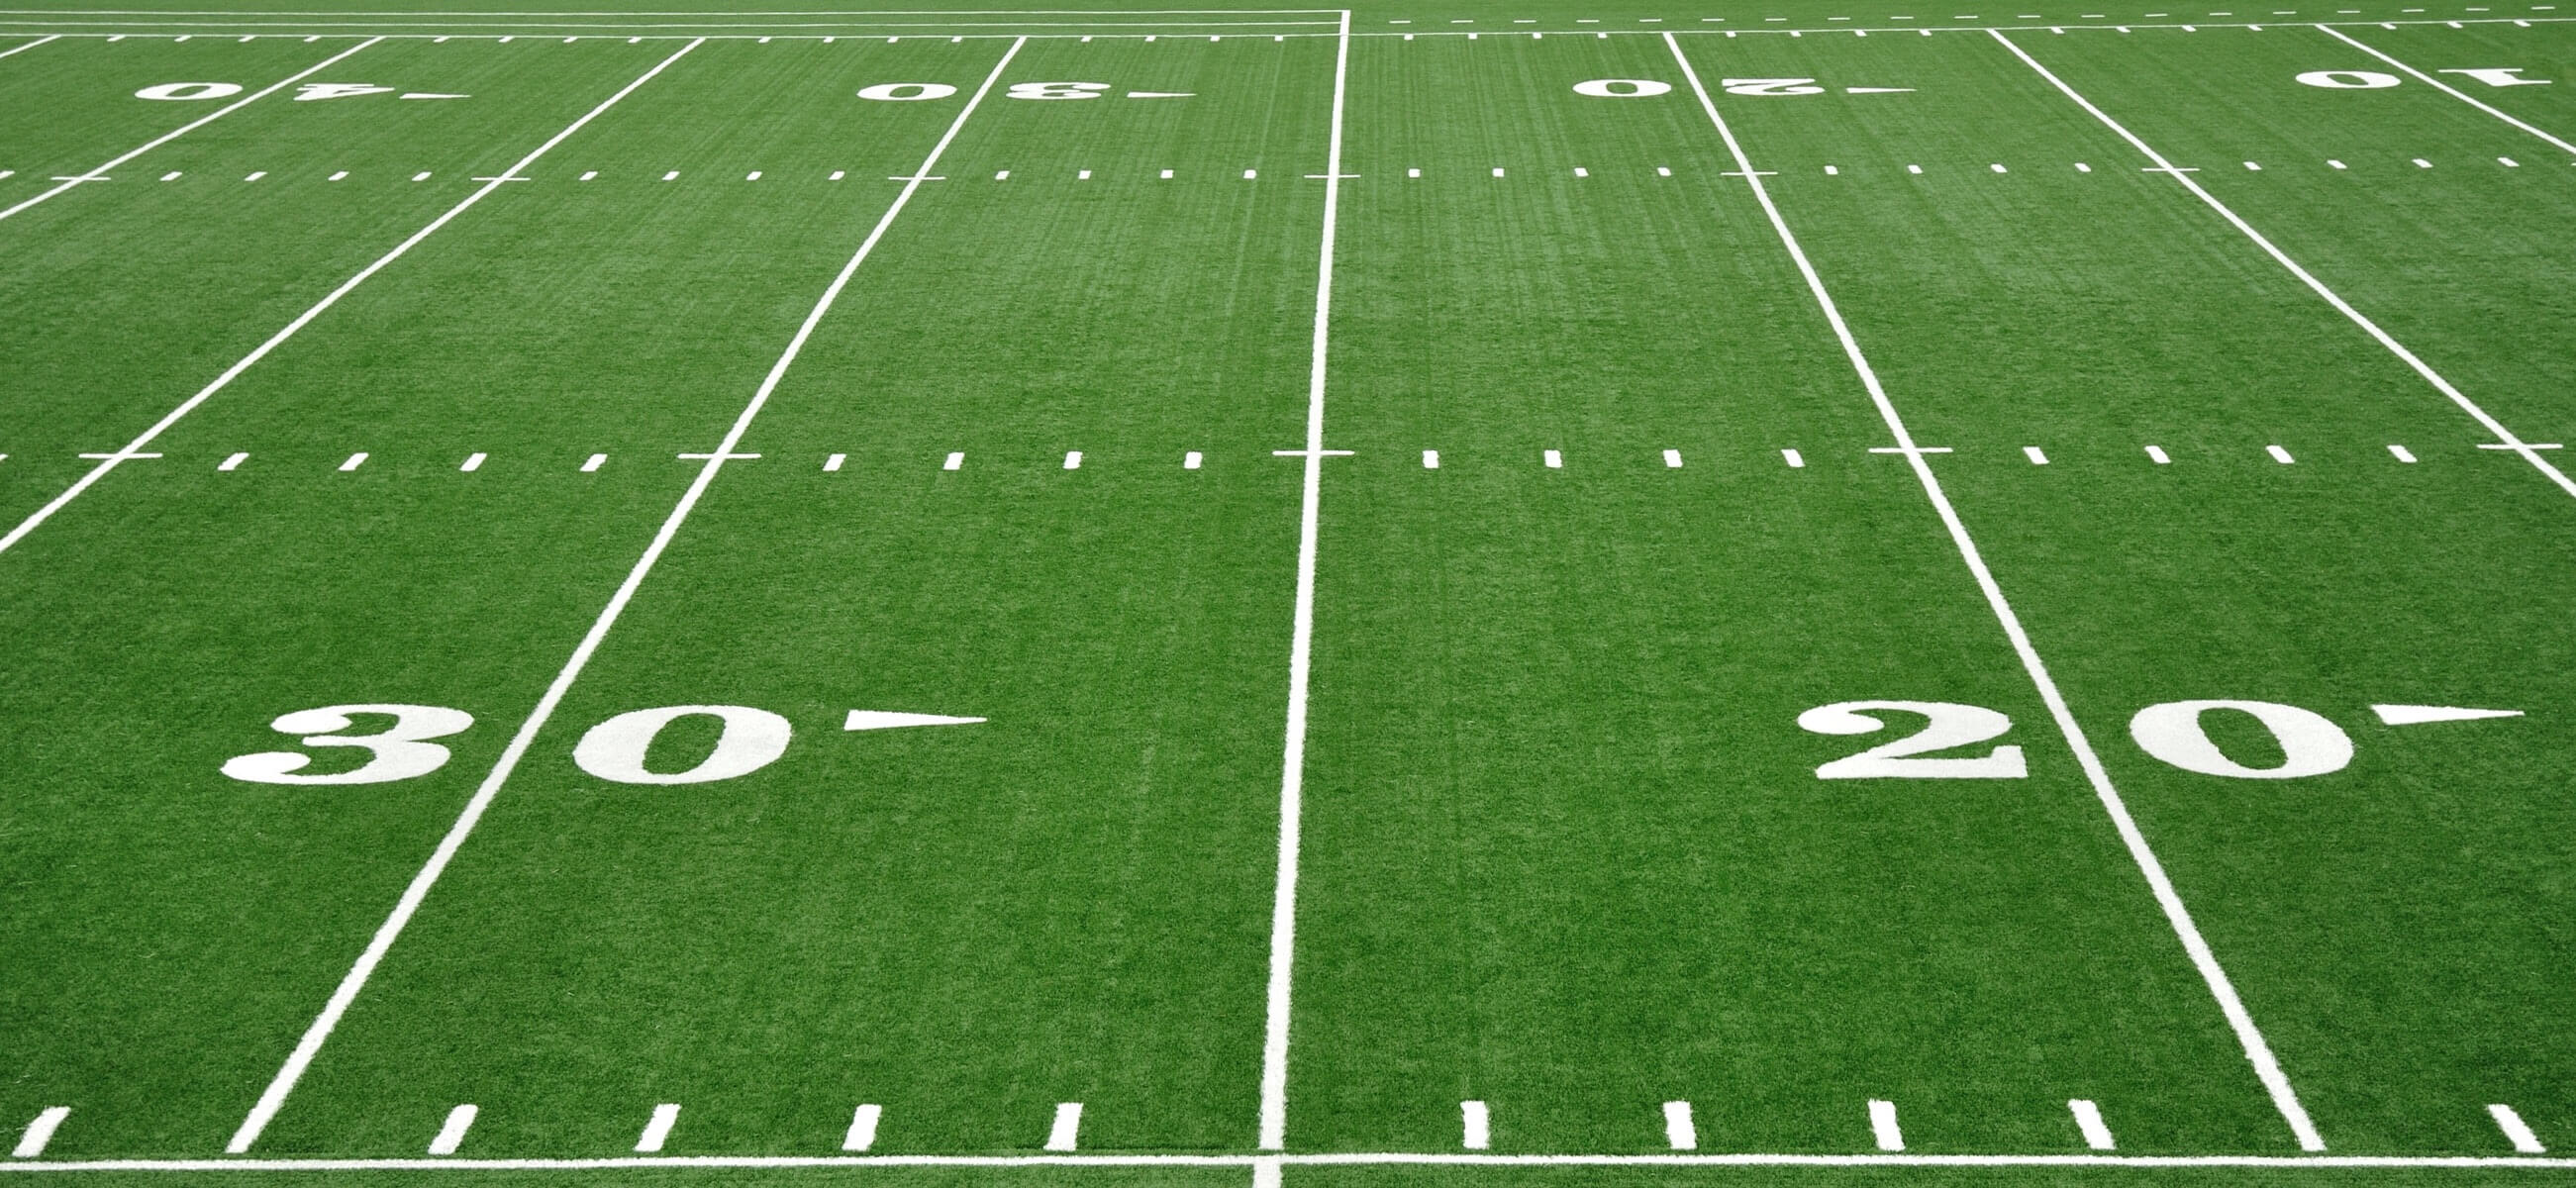 Football Field Blank Template - Imgflip Within Blank Football Field Template